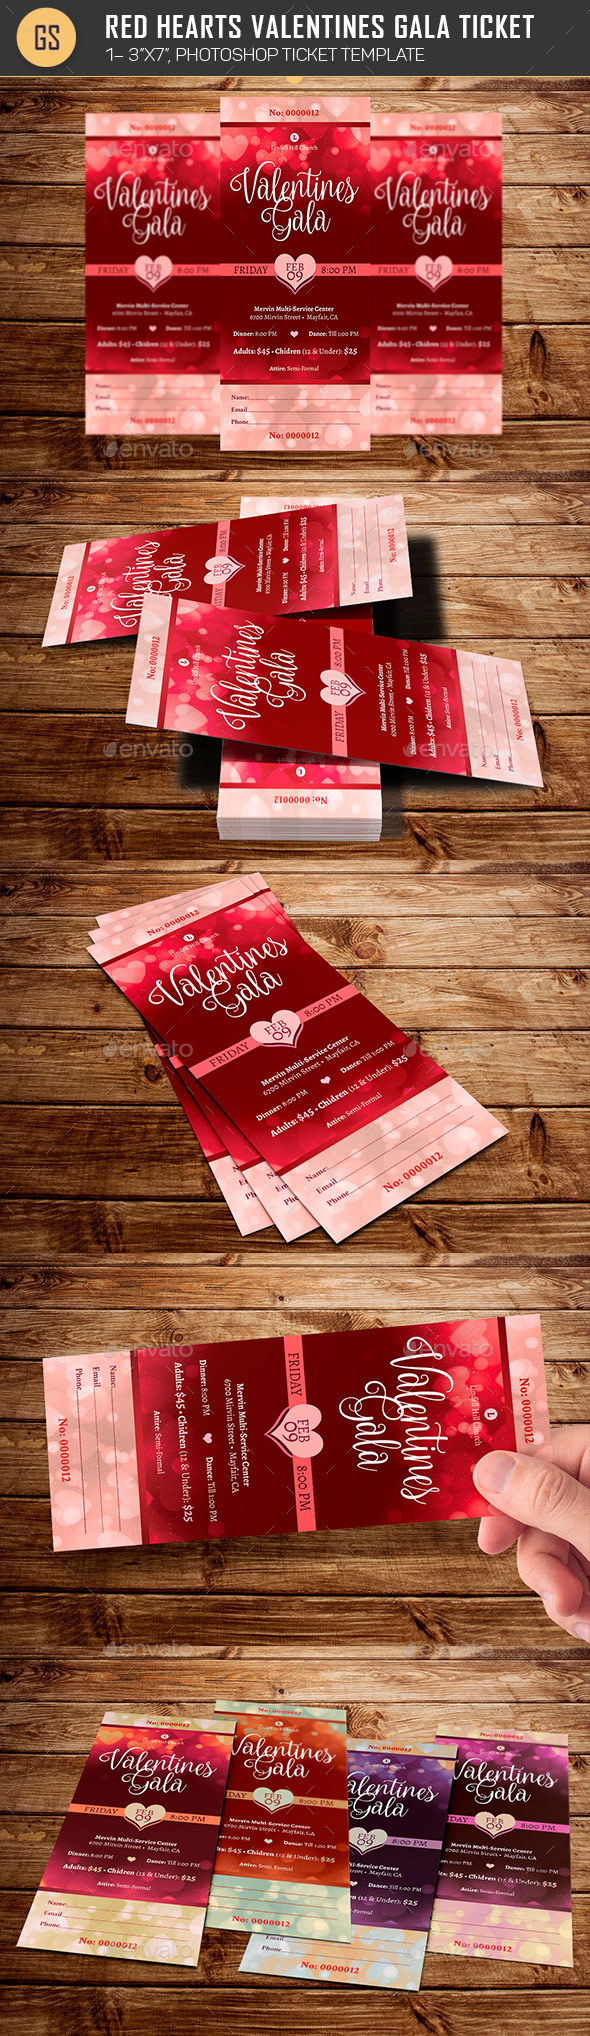 Red Hearts Valentines Gala Ticket Template - Miscellaneous Print Templates